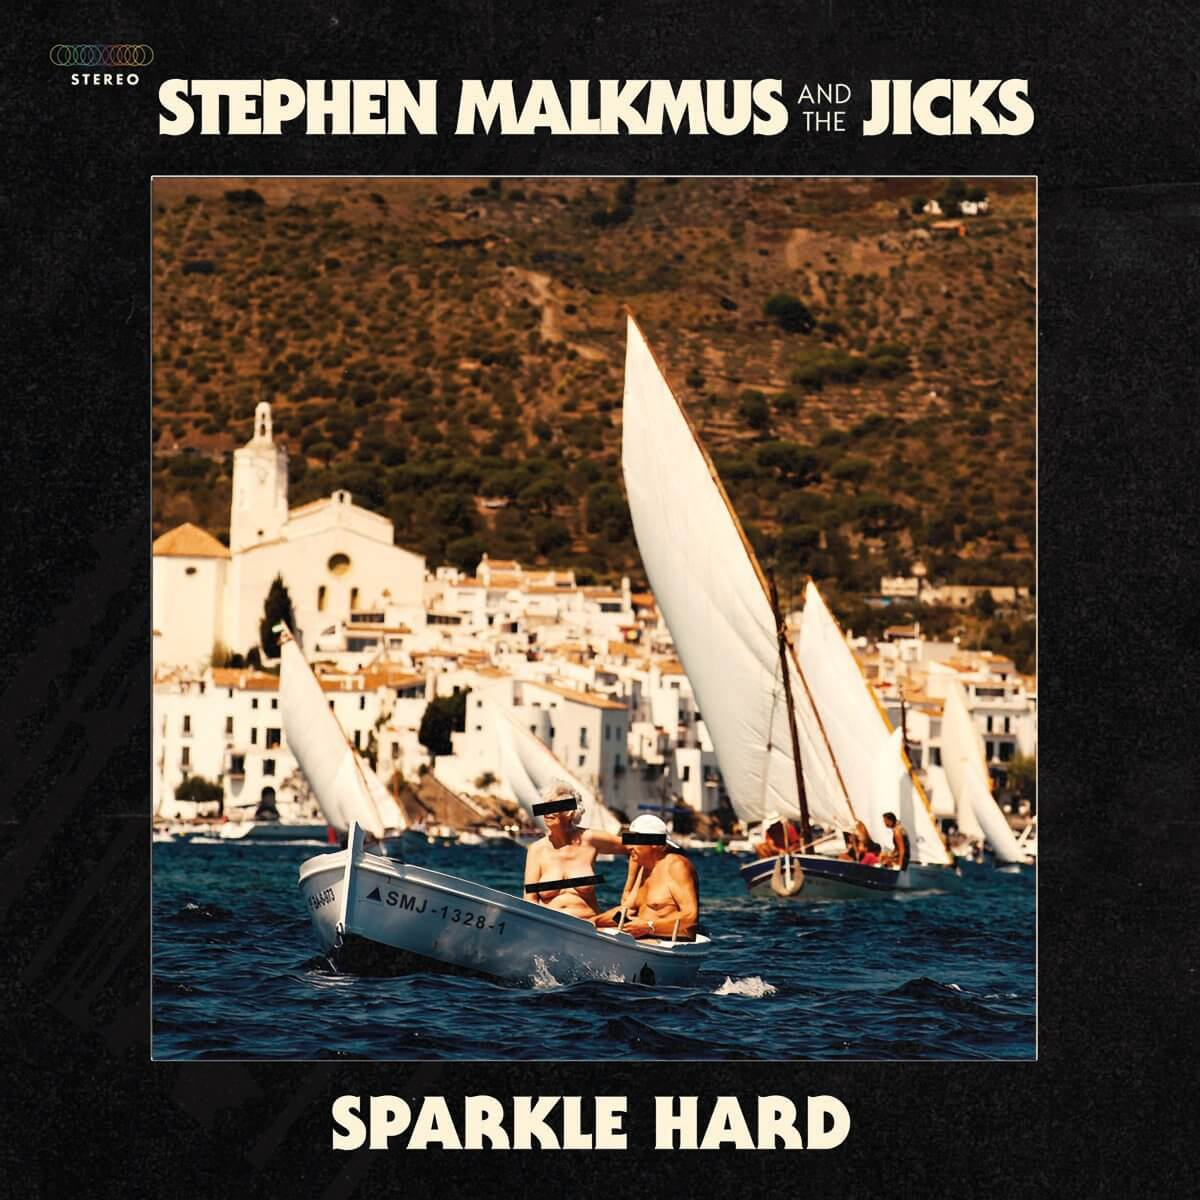 STEPHEN MALKMUS AND THE JICKS   Sparkle Hard, 2018, Chris Funk, 44:12